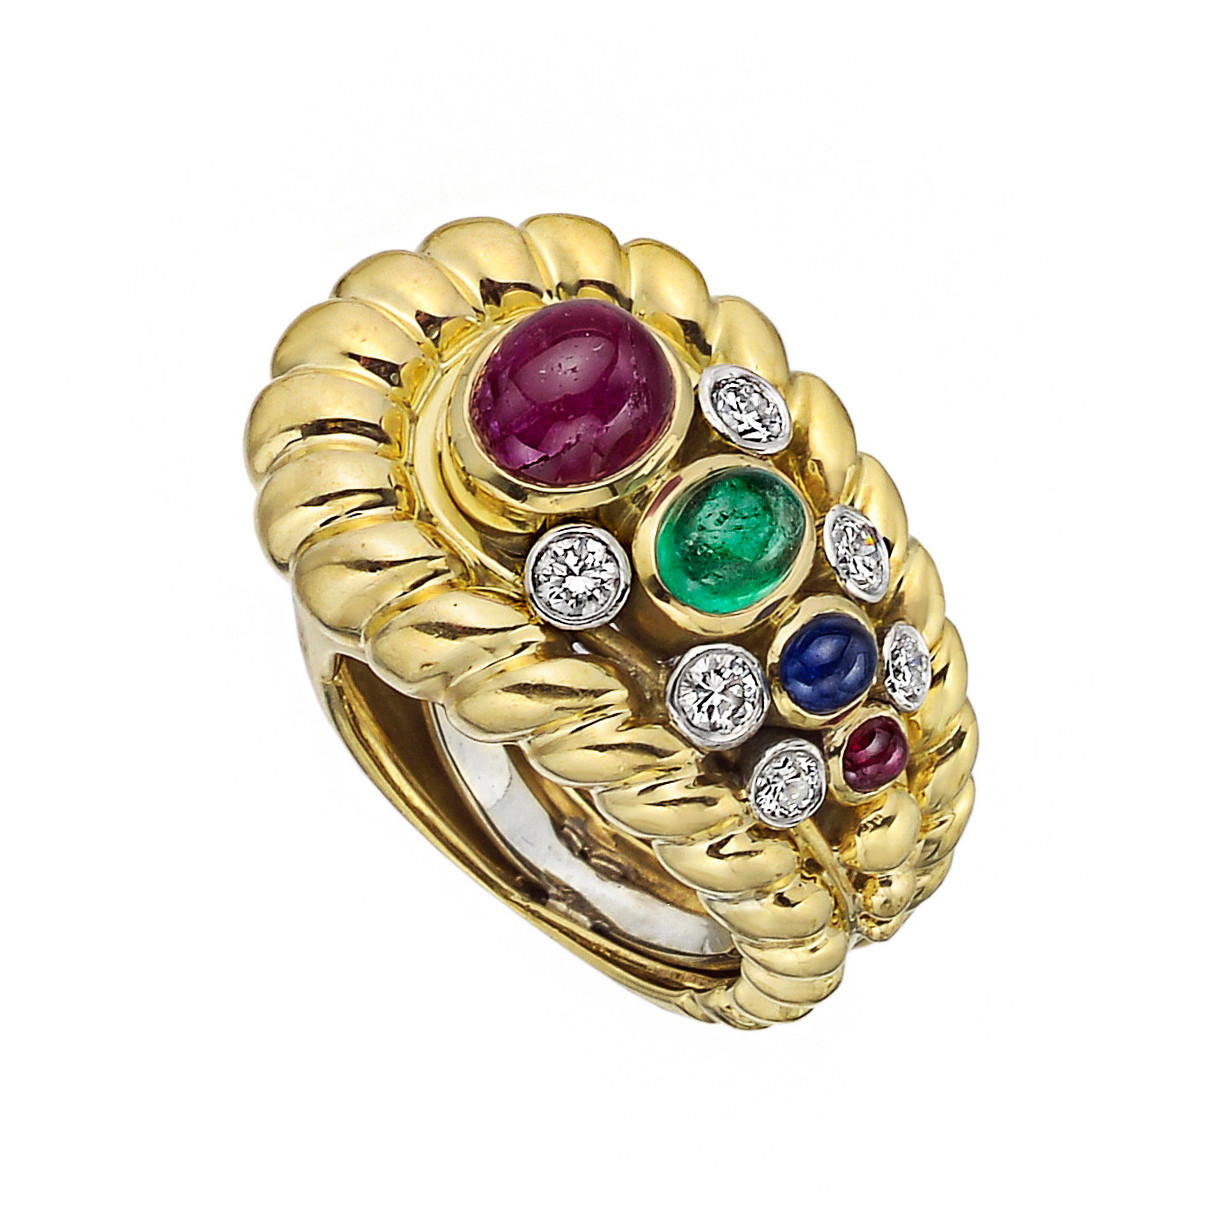 18k Yellow Gold & Gem-Set Buckle Ring